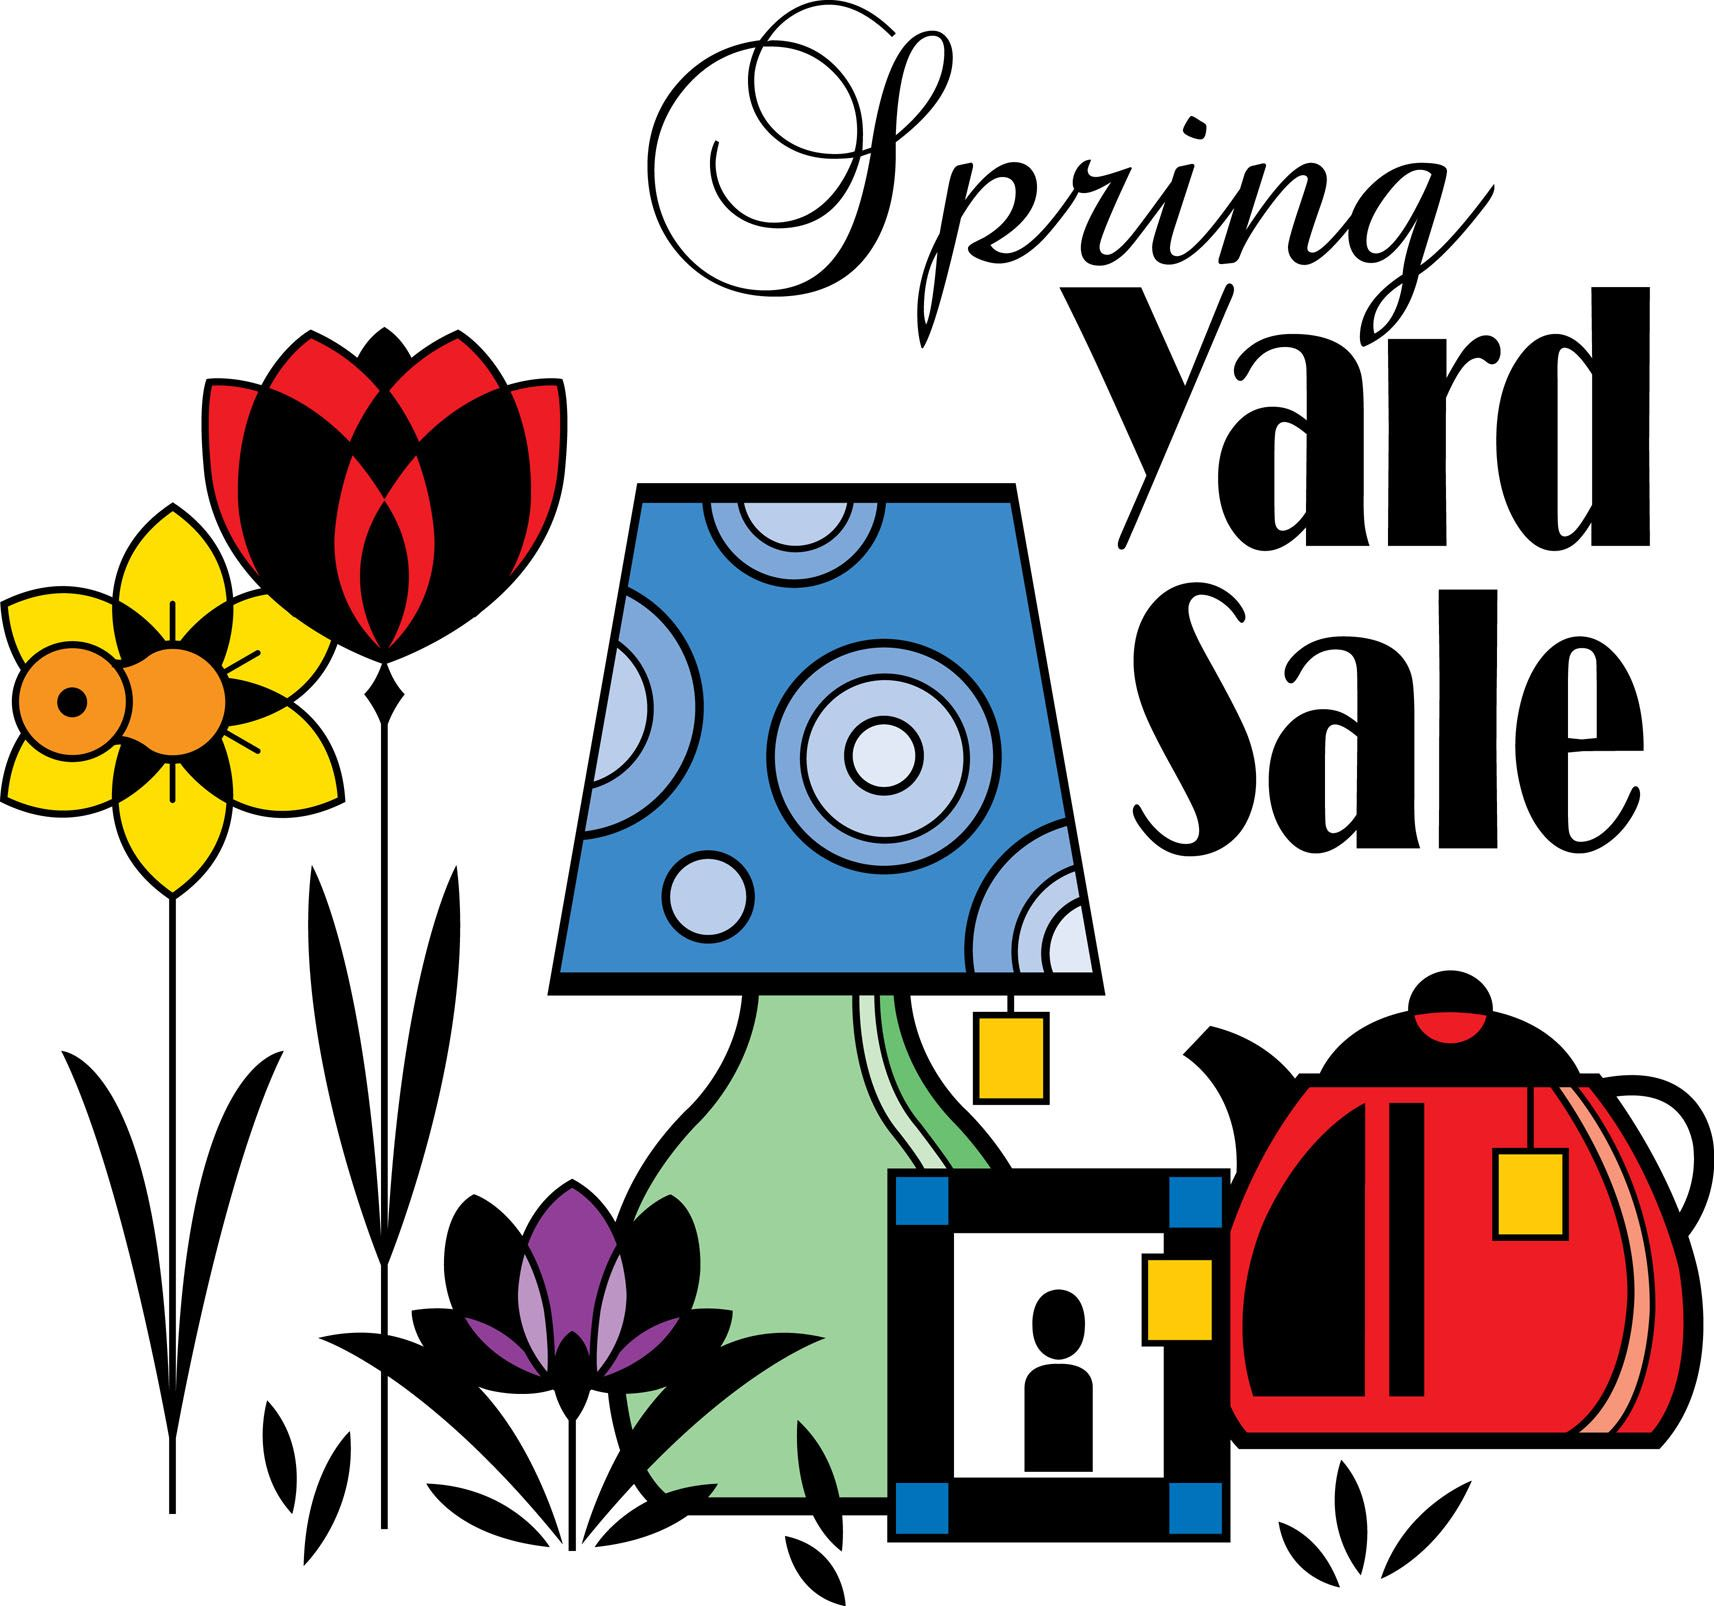 Clip Art Yard Sale With Images Yard Sale Yard Sale Signs For